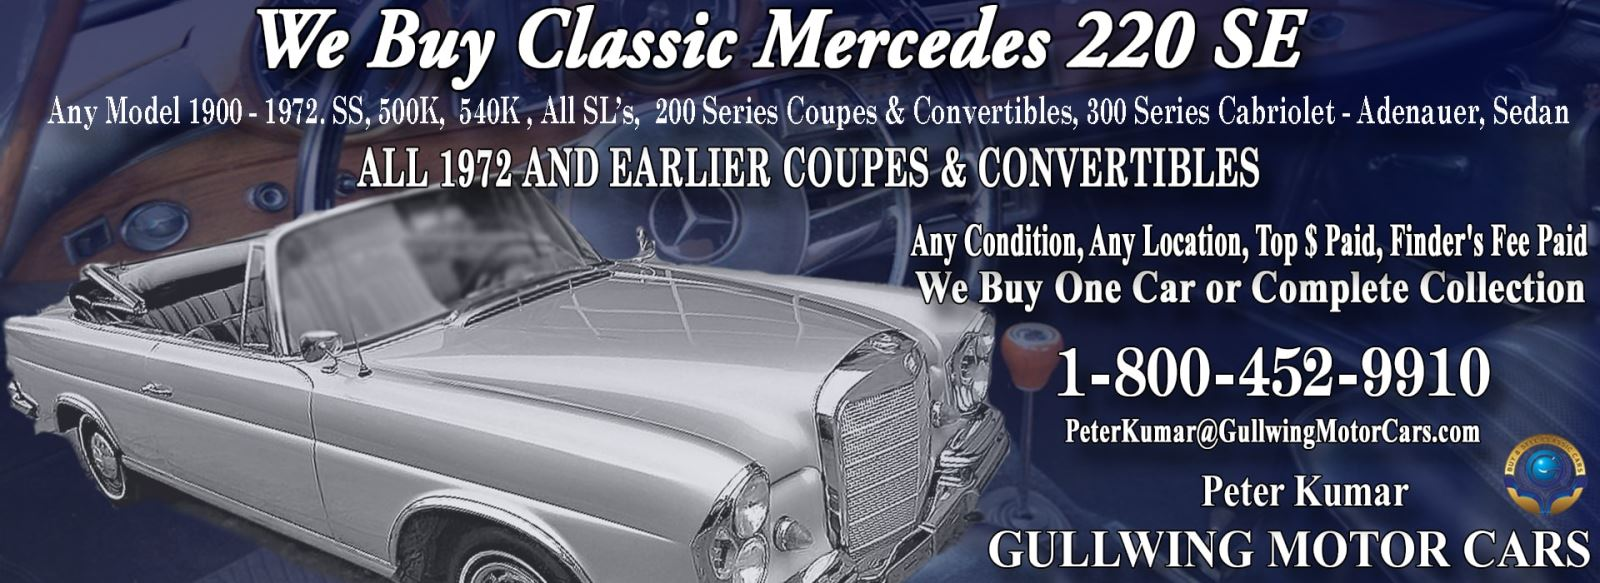 Classic Mercedes 220SE for sale, we buy vintage Mercedes 220SE. Call Peter Kumar. Gullwing Motor